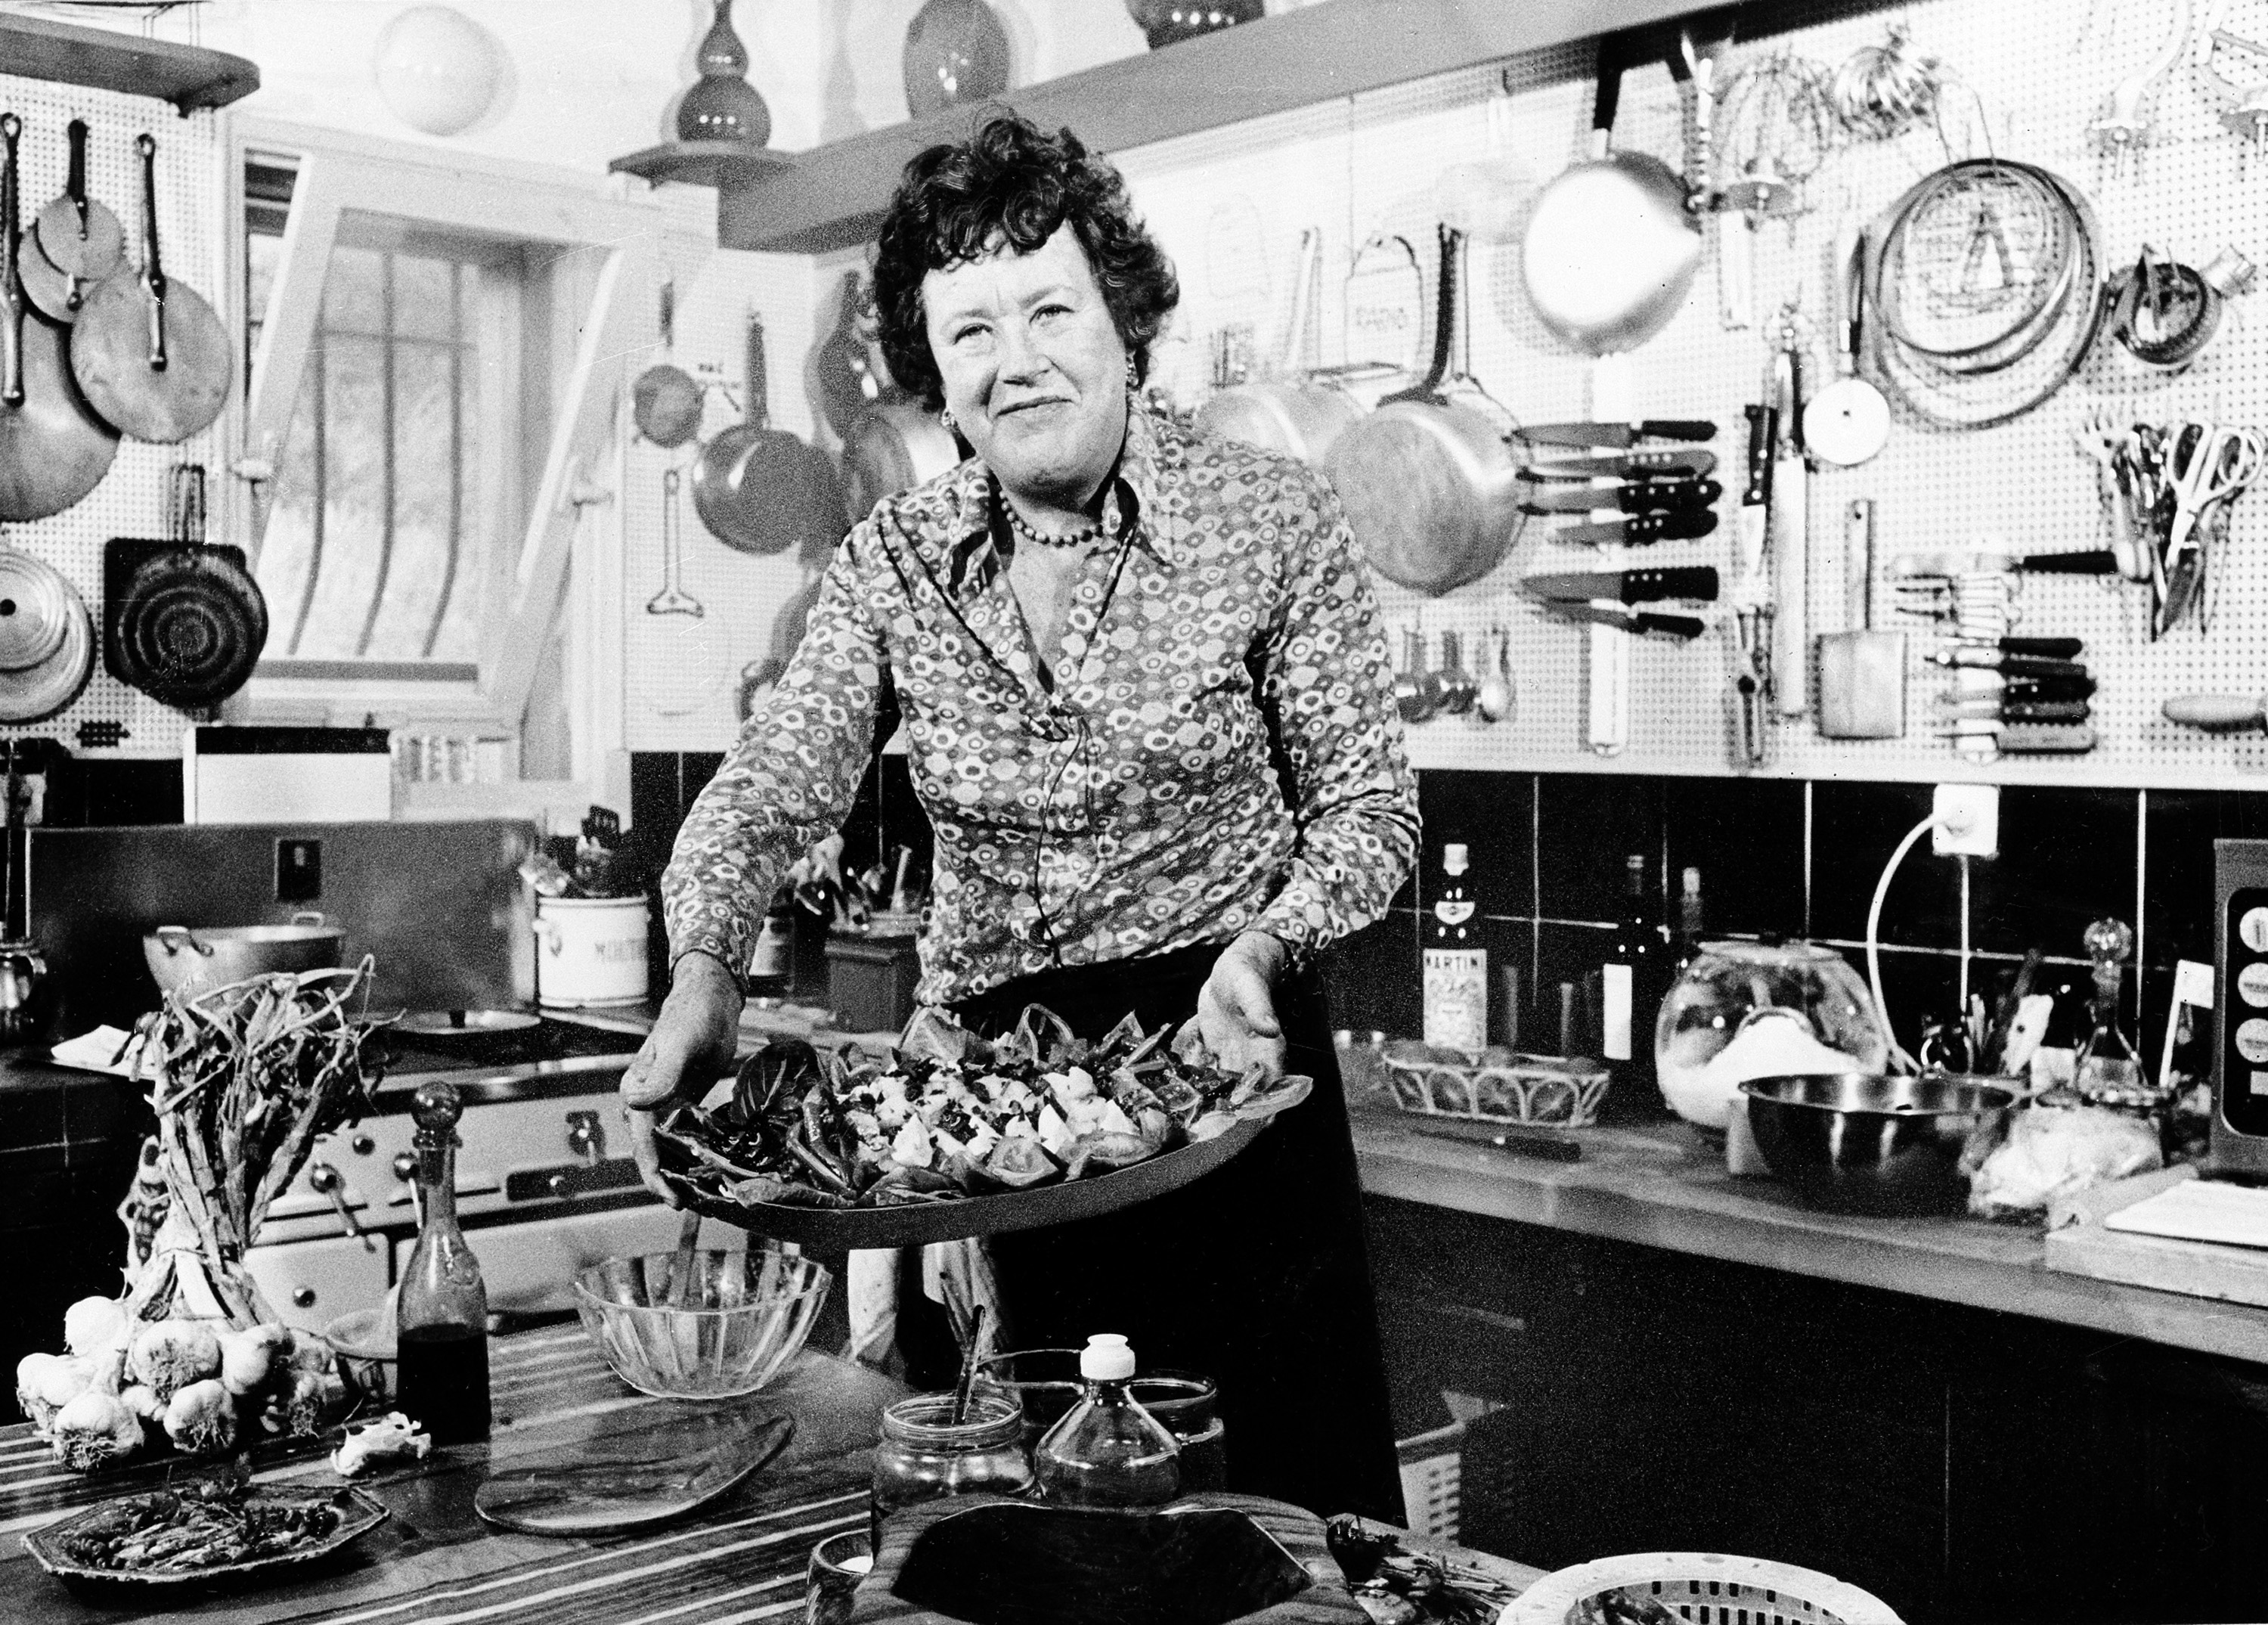 FILE - In this Aug. 21, 1978, file photo, American television chef Julia Child shows a salade nicoise she prepared in the kitchen of her vacation home in Grasse, southern France. Child changed the way Americans look at food as well as the way women looked at cooking and themselves. (AP Photo, File) 08092012xBRIEFING